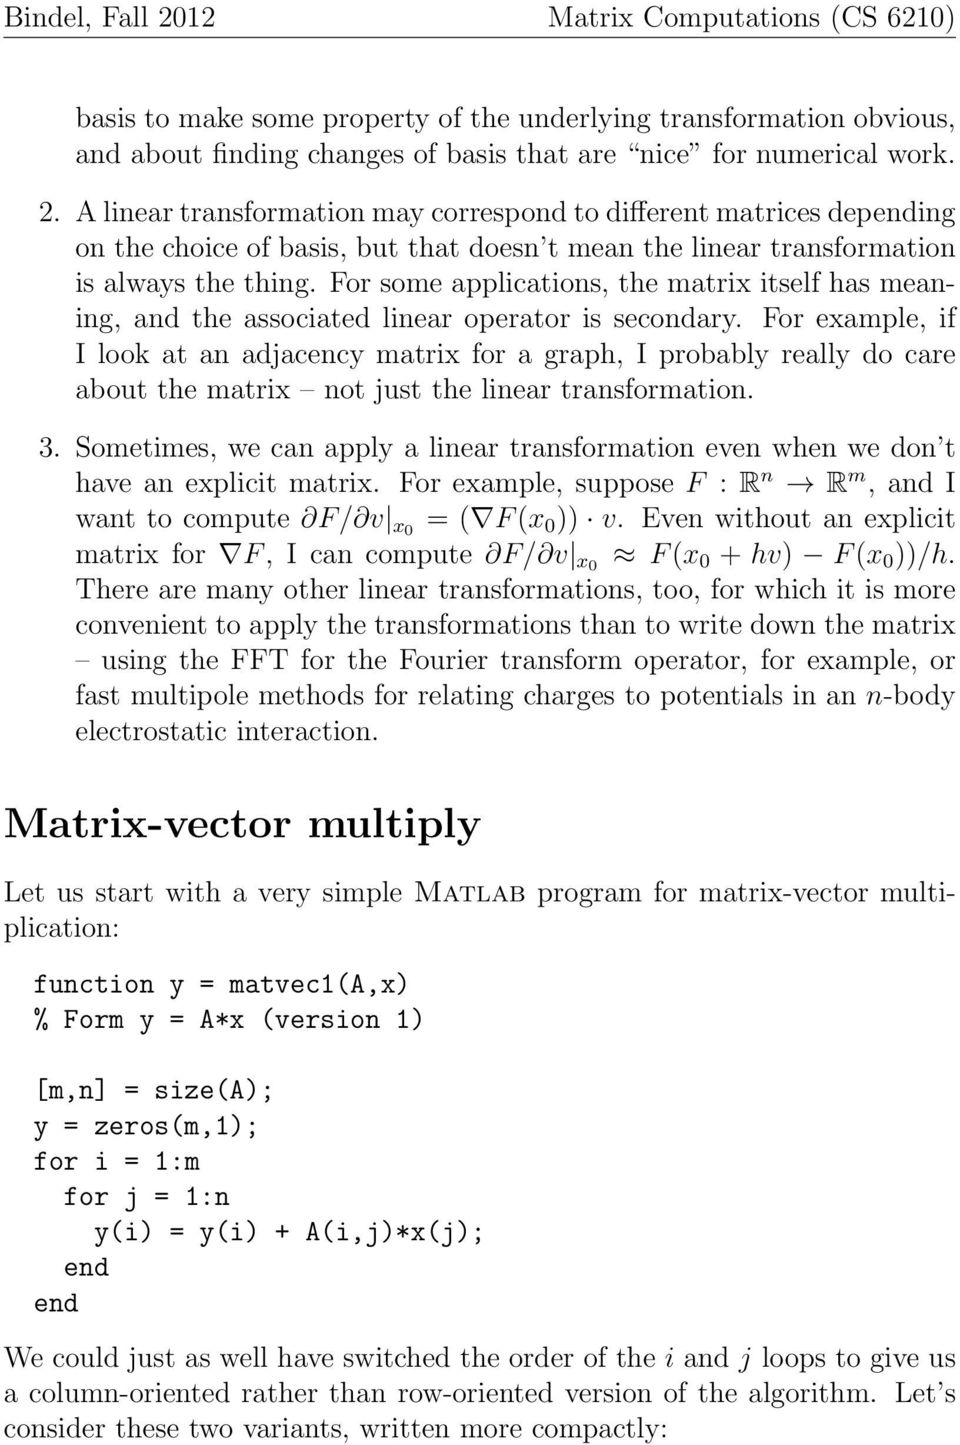 For some applications, the matrix itself has meaning, and the associated linear operator is secondary.